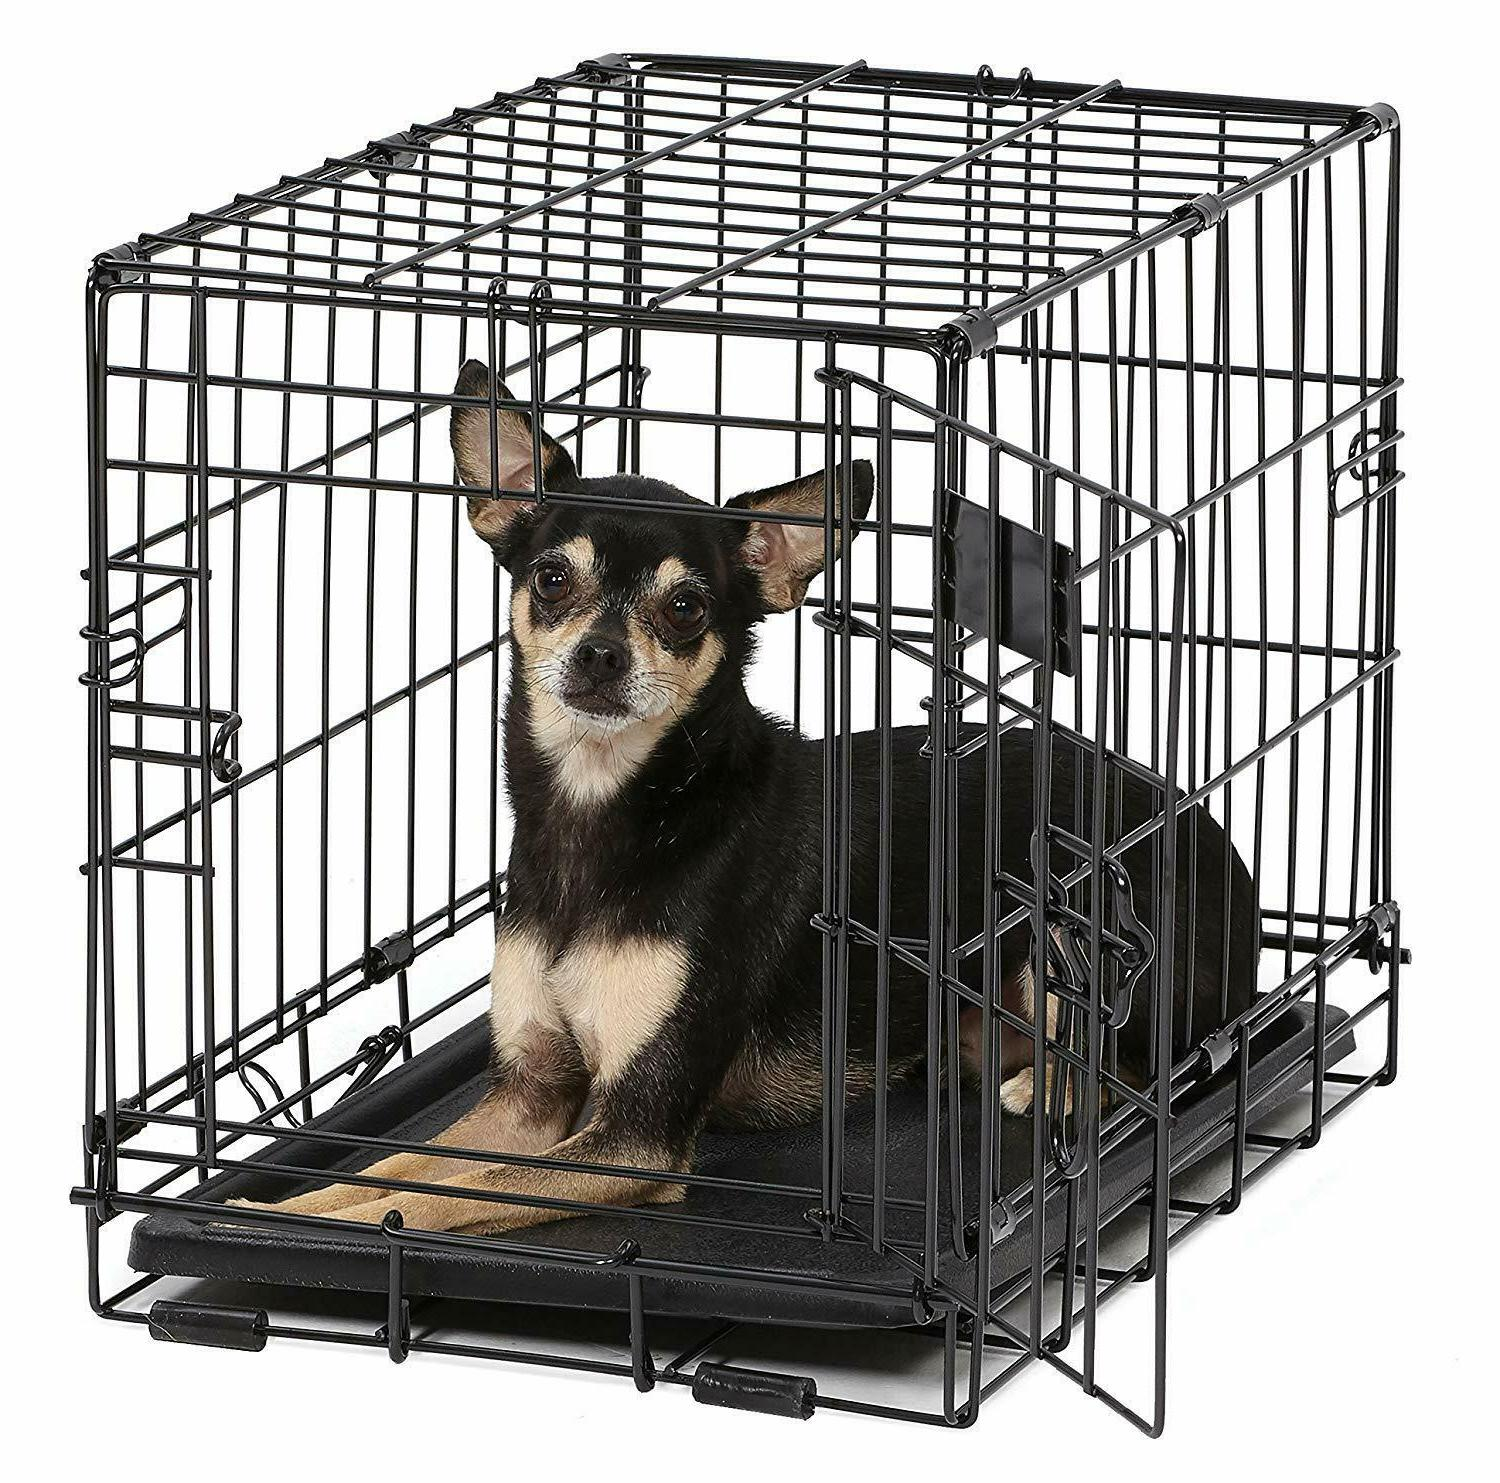 Pet Cage for Extra Small Breed Dog Crate Tray Metal Home Ken